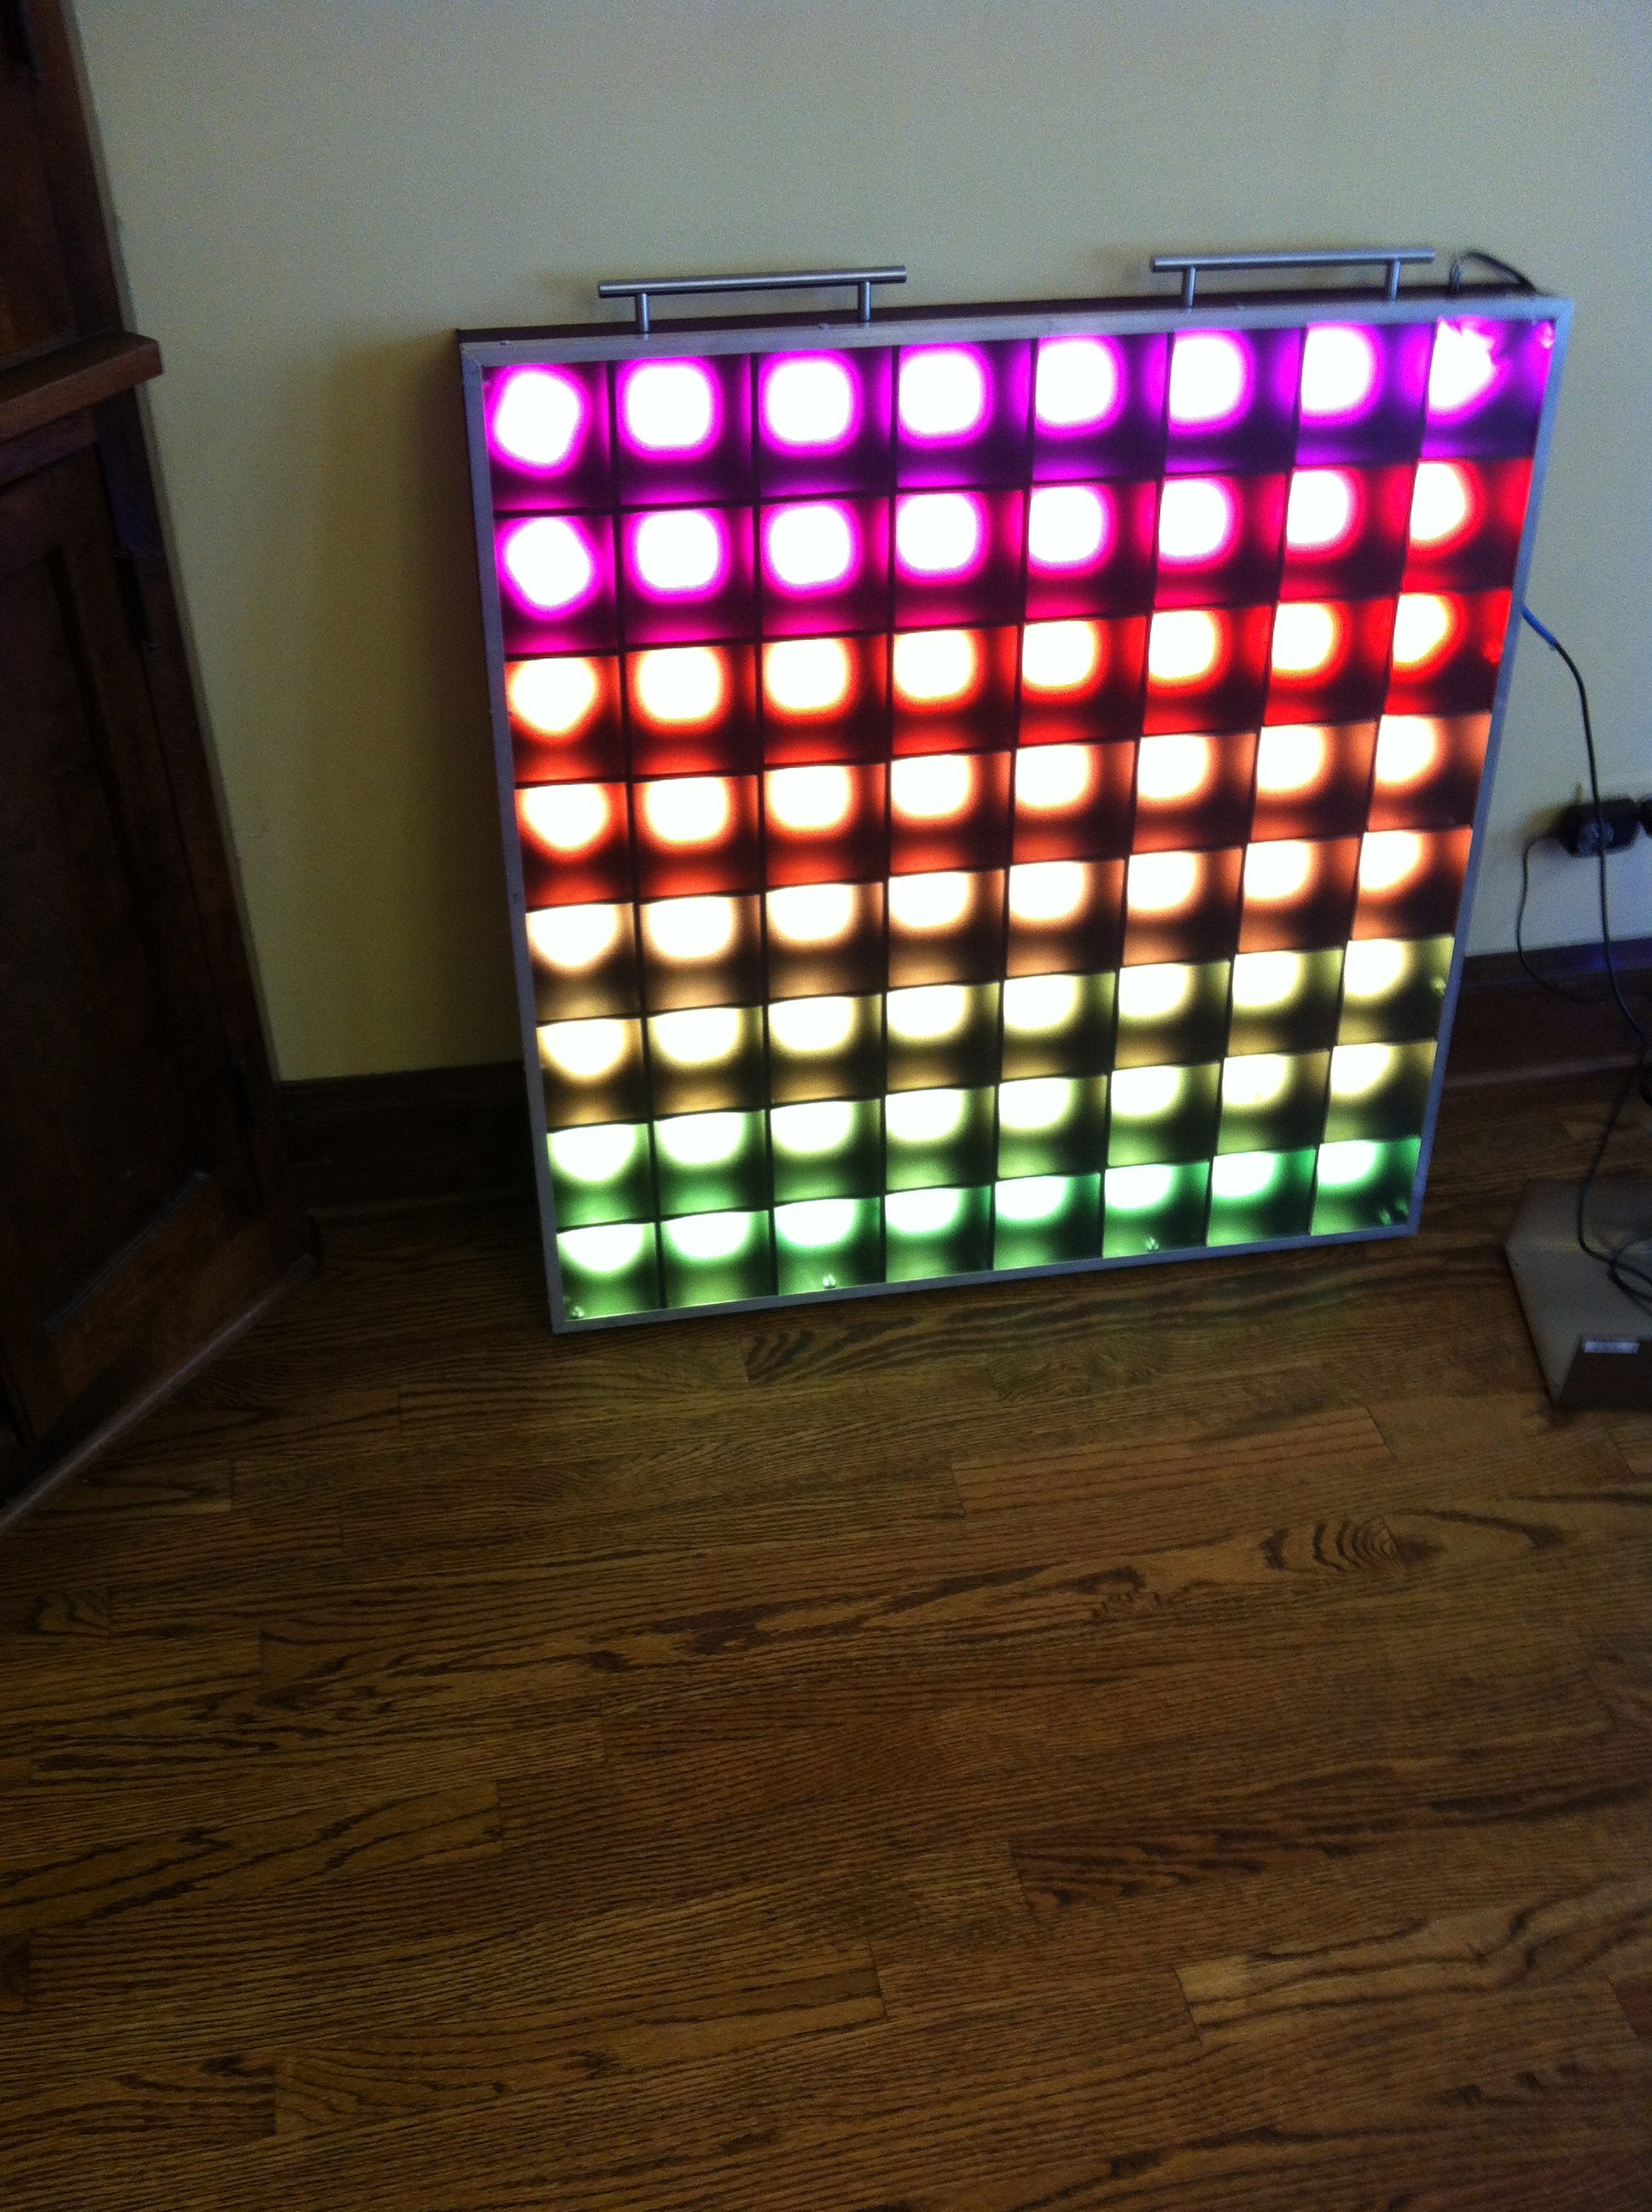 PixelLux- A 64 Pixel RGB LED Video Screen